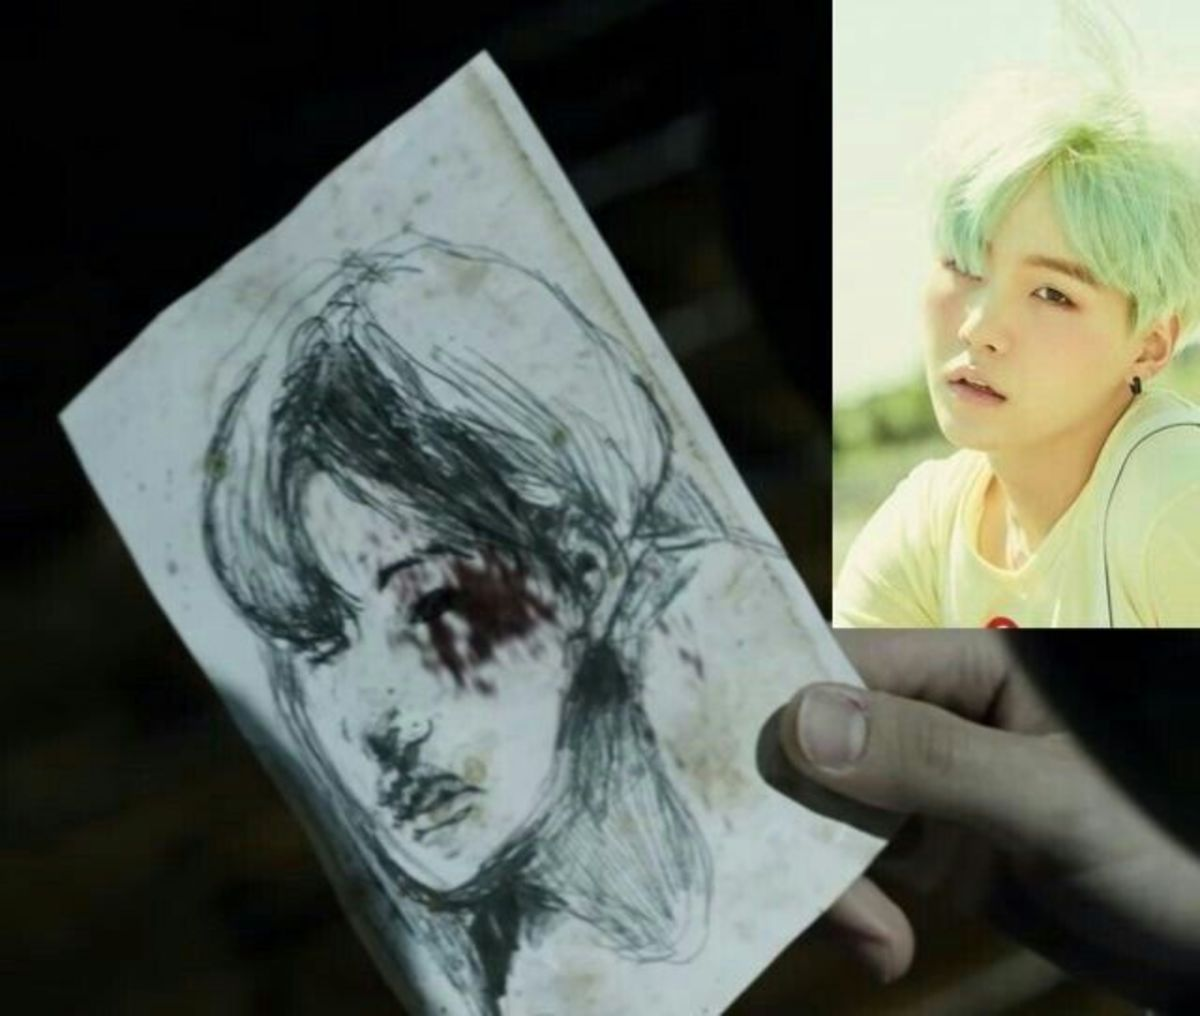 The drawing of Suga.